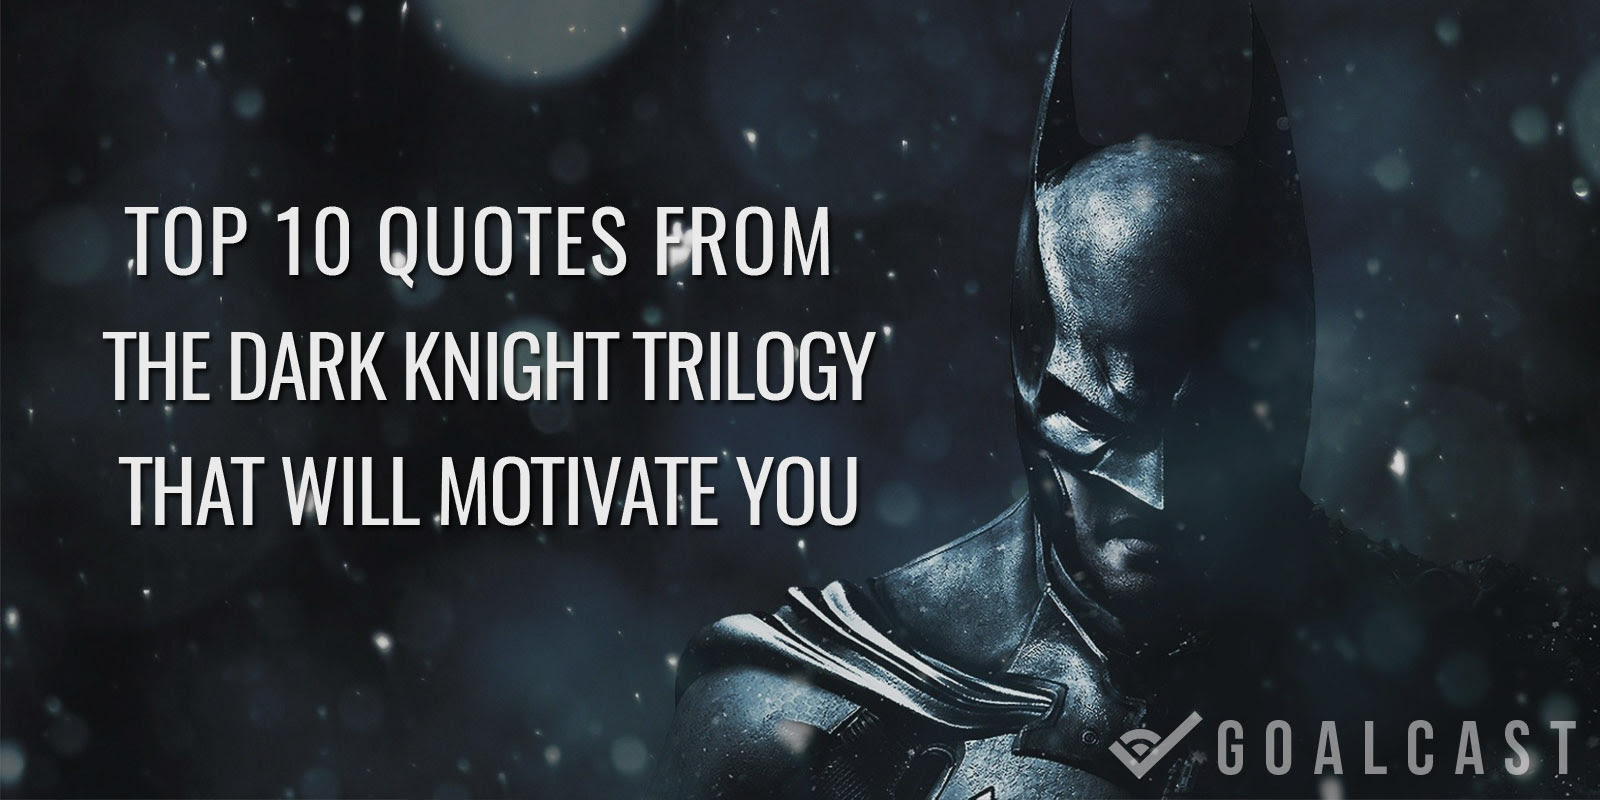 Batman Wallpaper Why Do We Fall Batman Quotes Why Do We Fall Quotesta